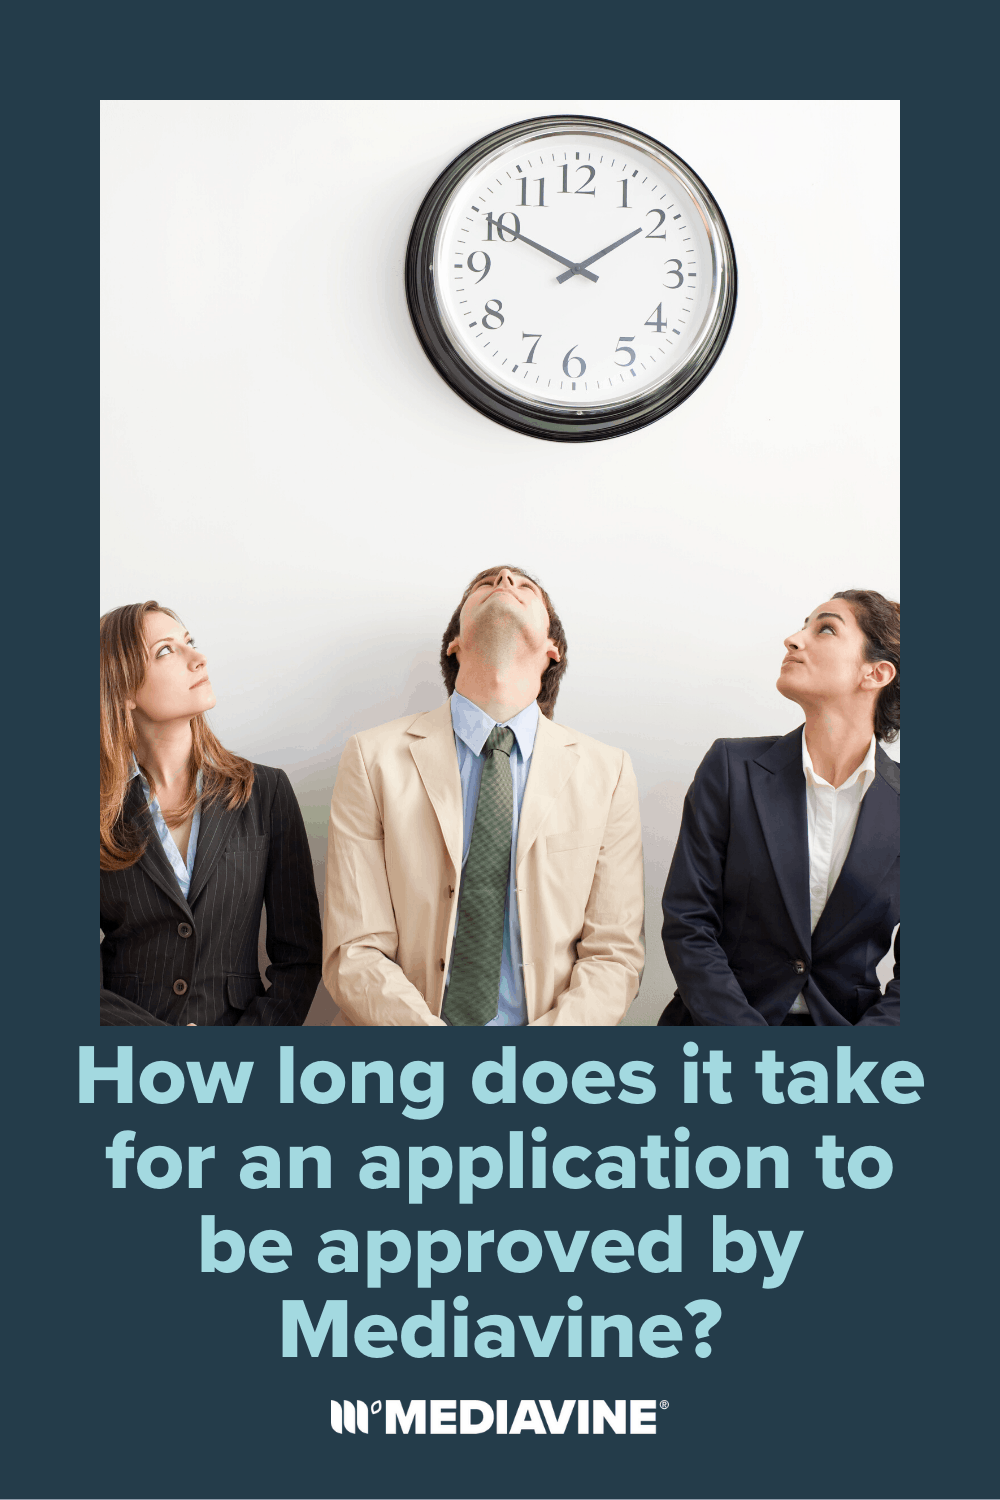 Mediavine Pinterest Image - How long does it take for an application to be approved by Mediavine?